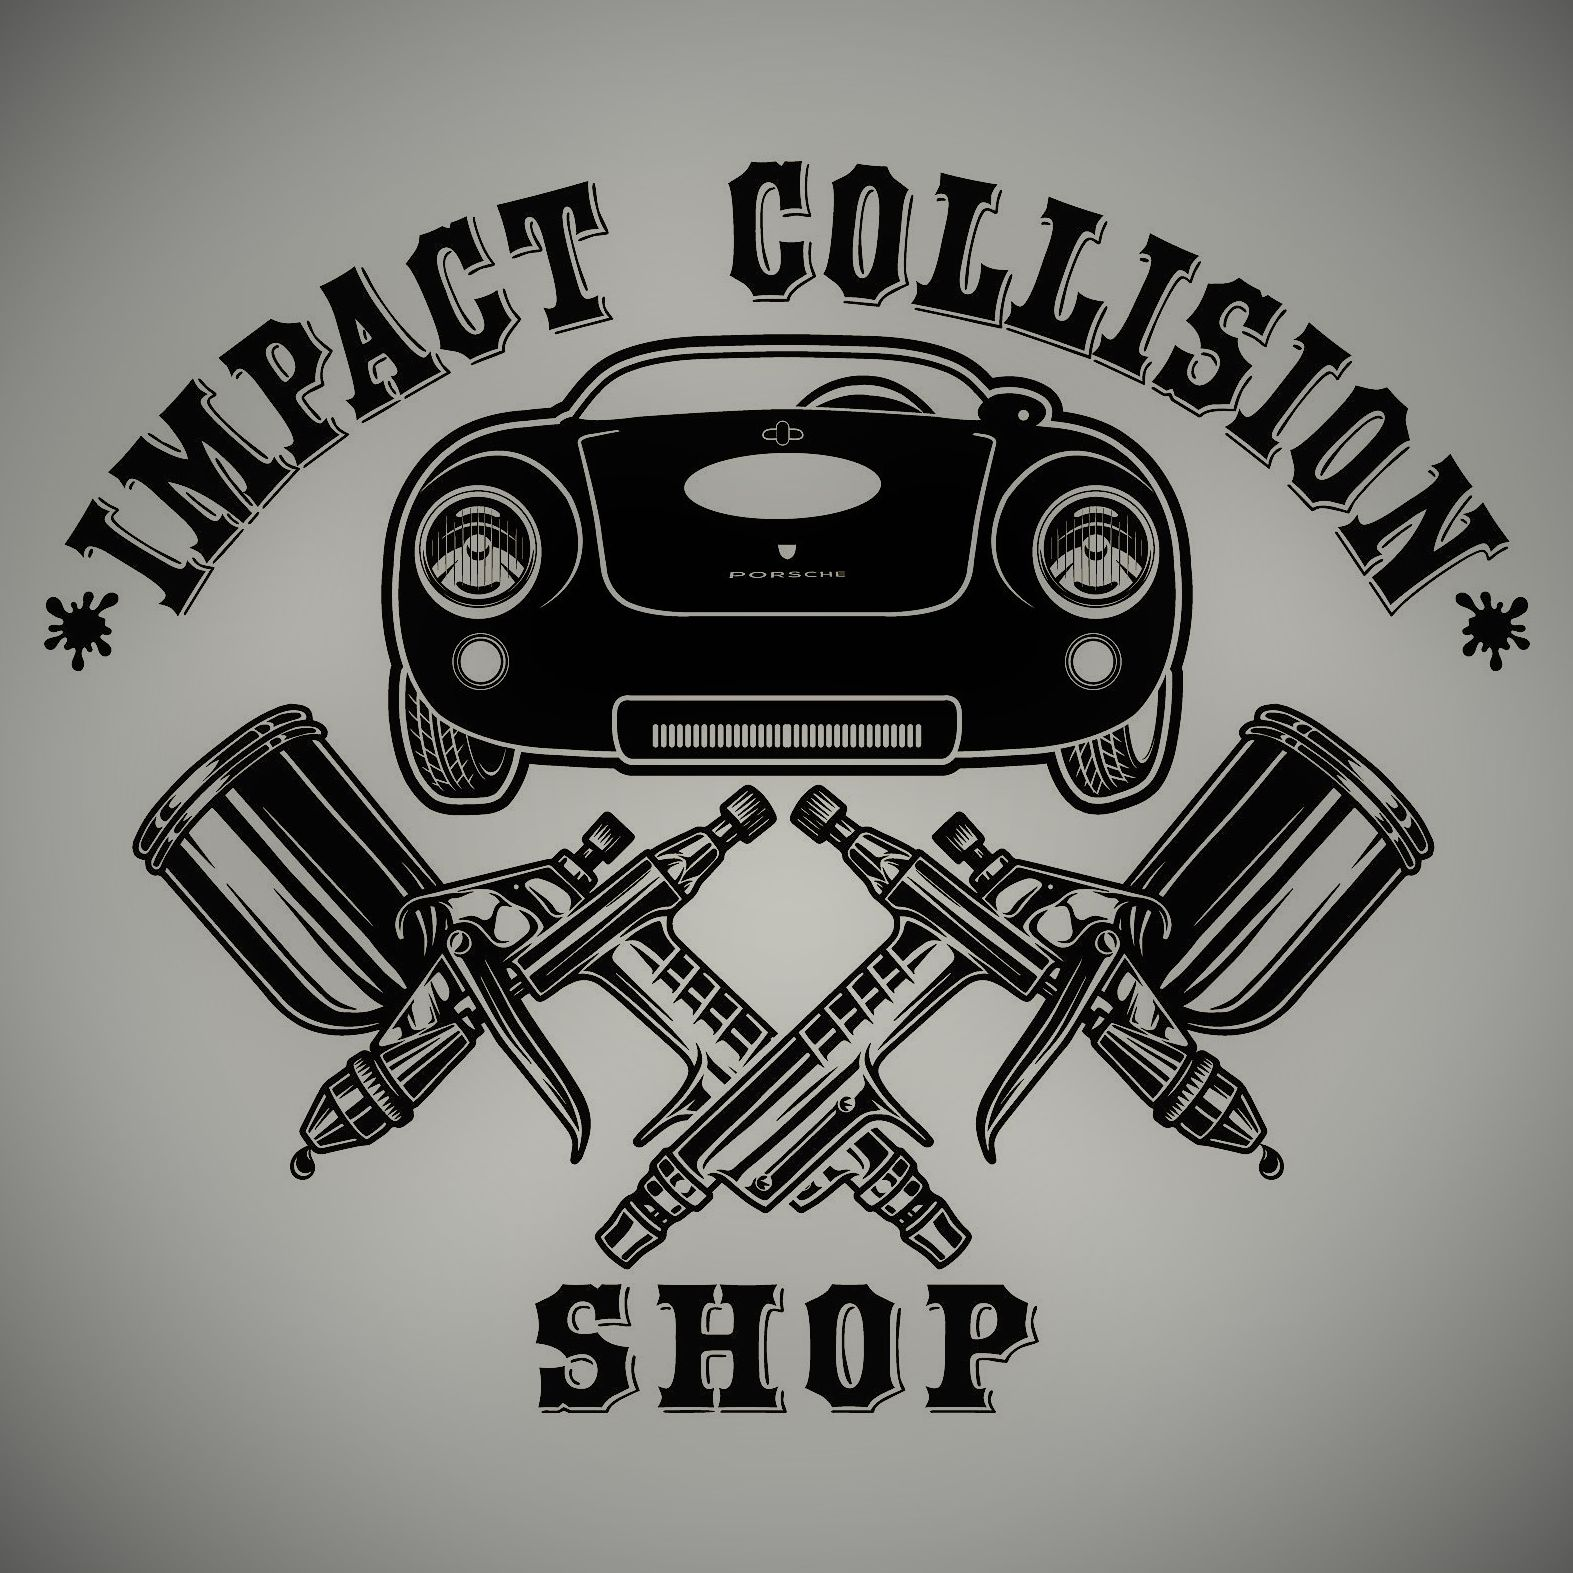 Impact Collision Shop